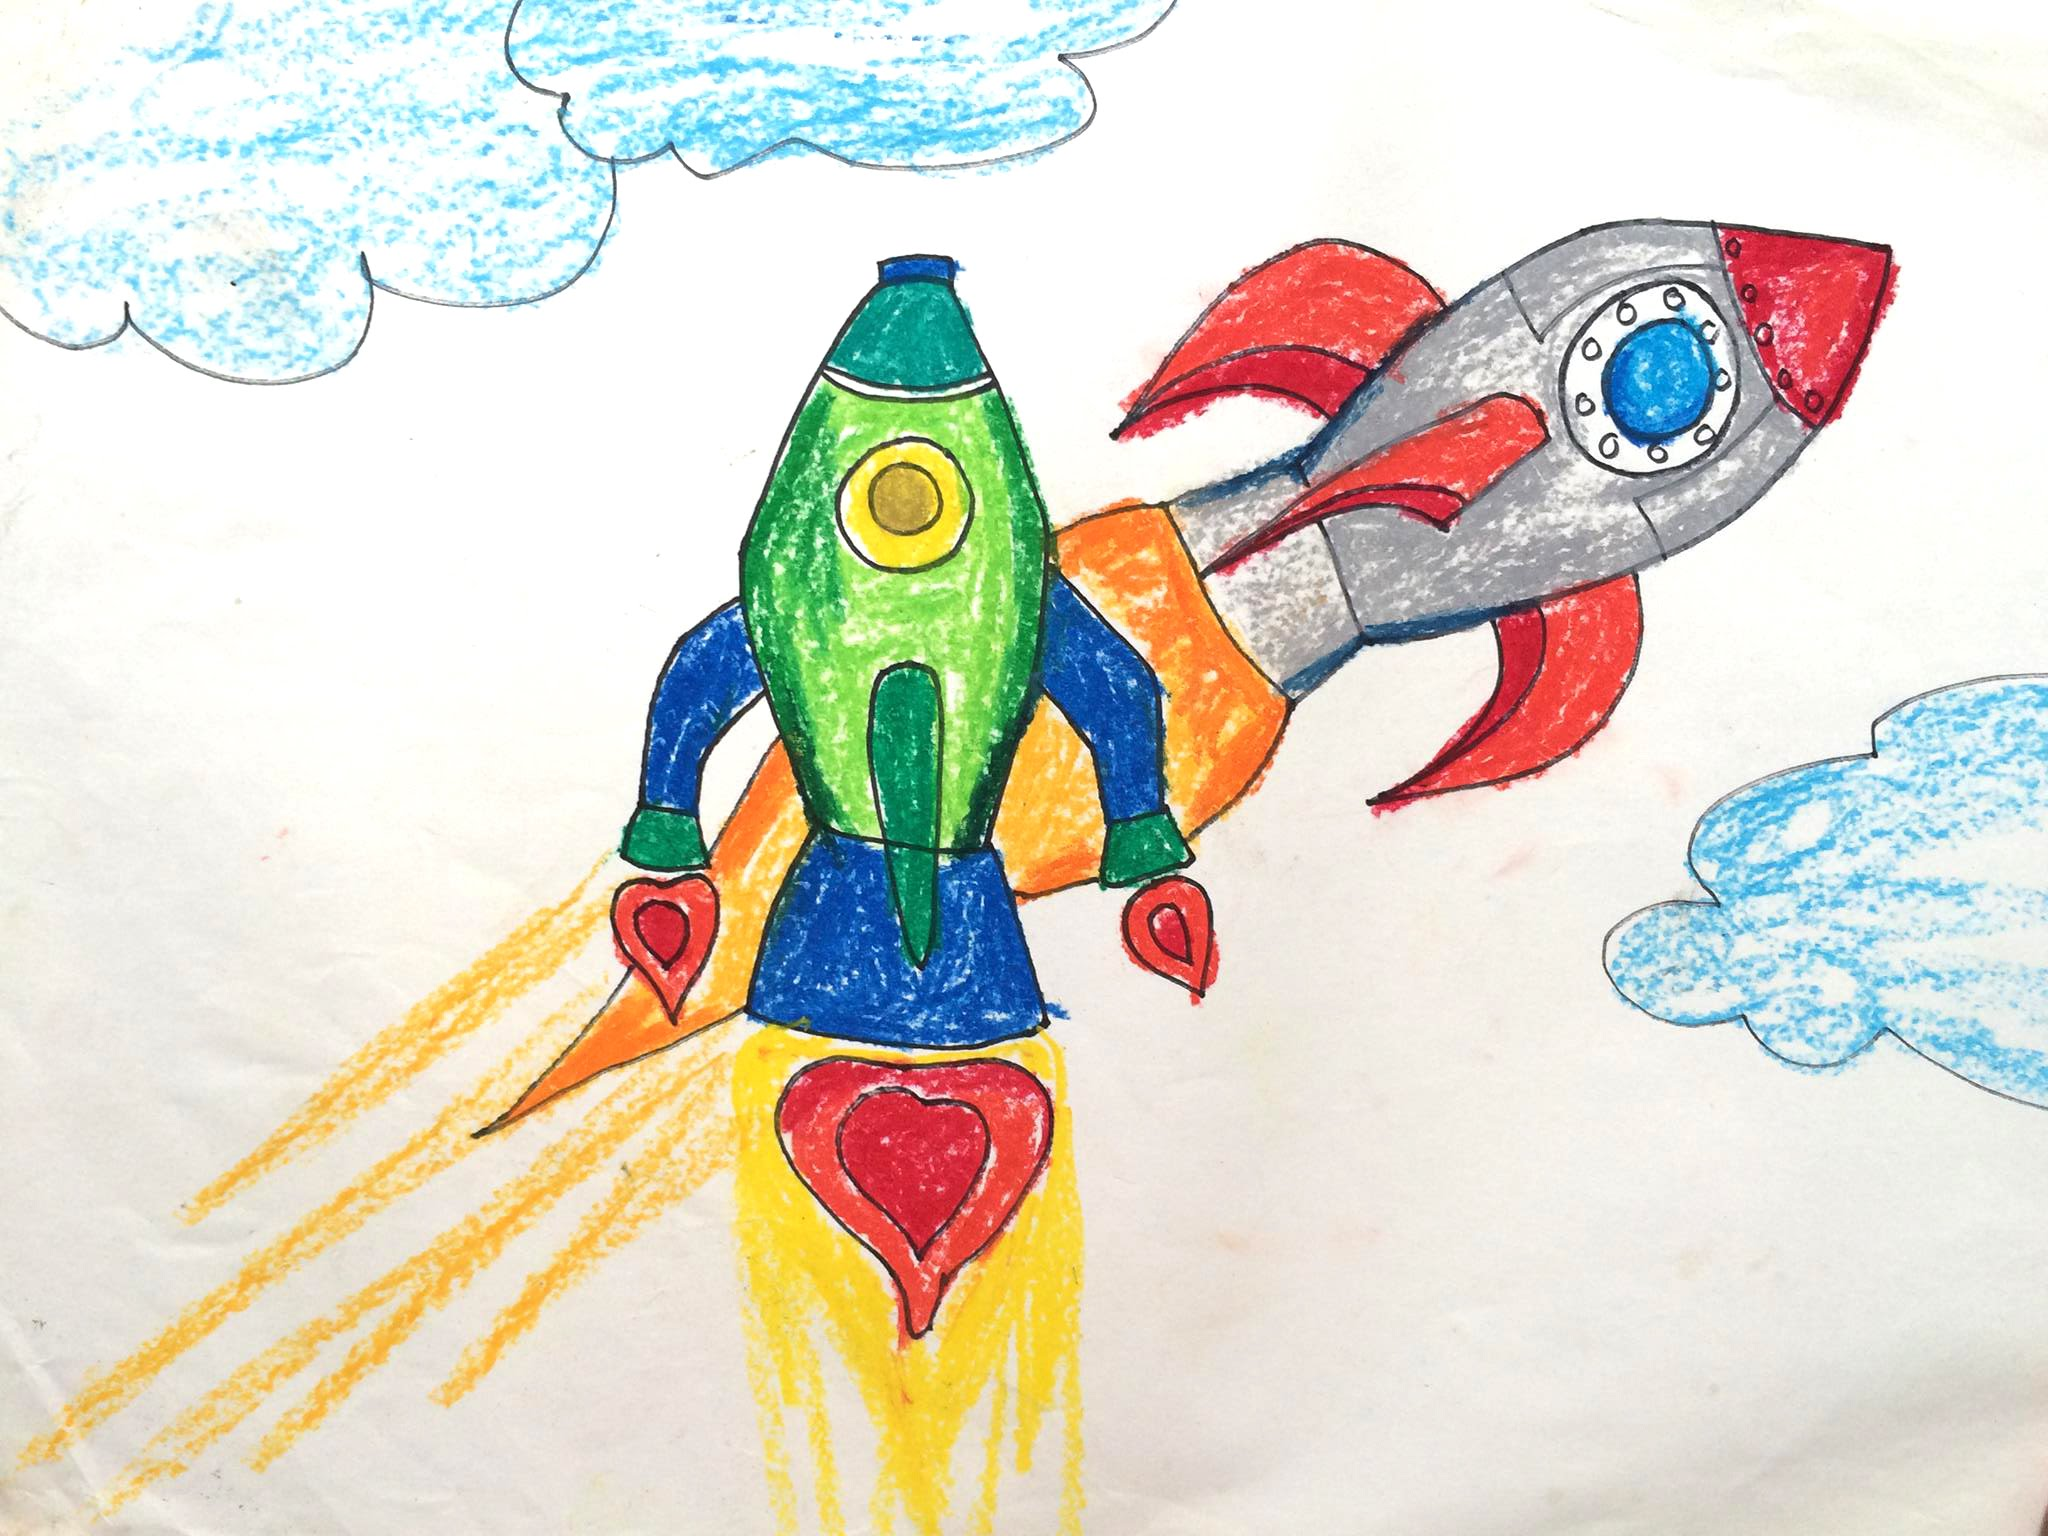 2048x1536 How To Draw Transport How To Draw A Rocket Ship For Kids